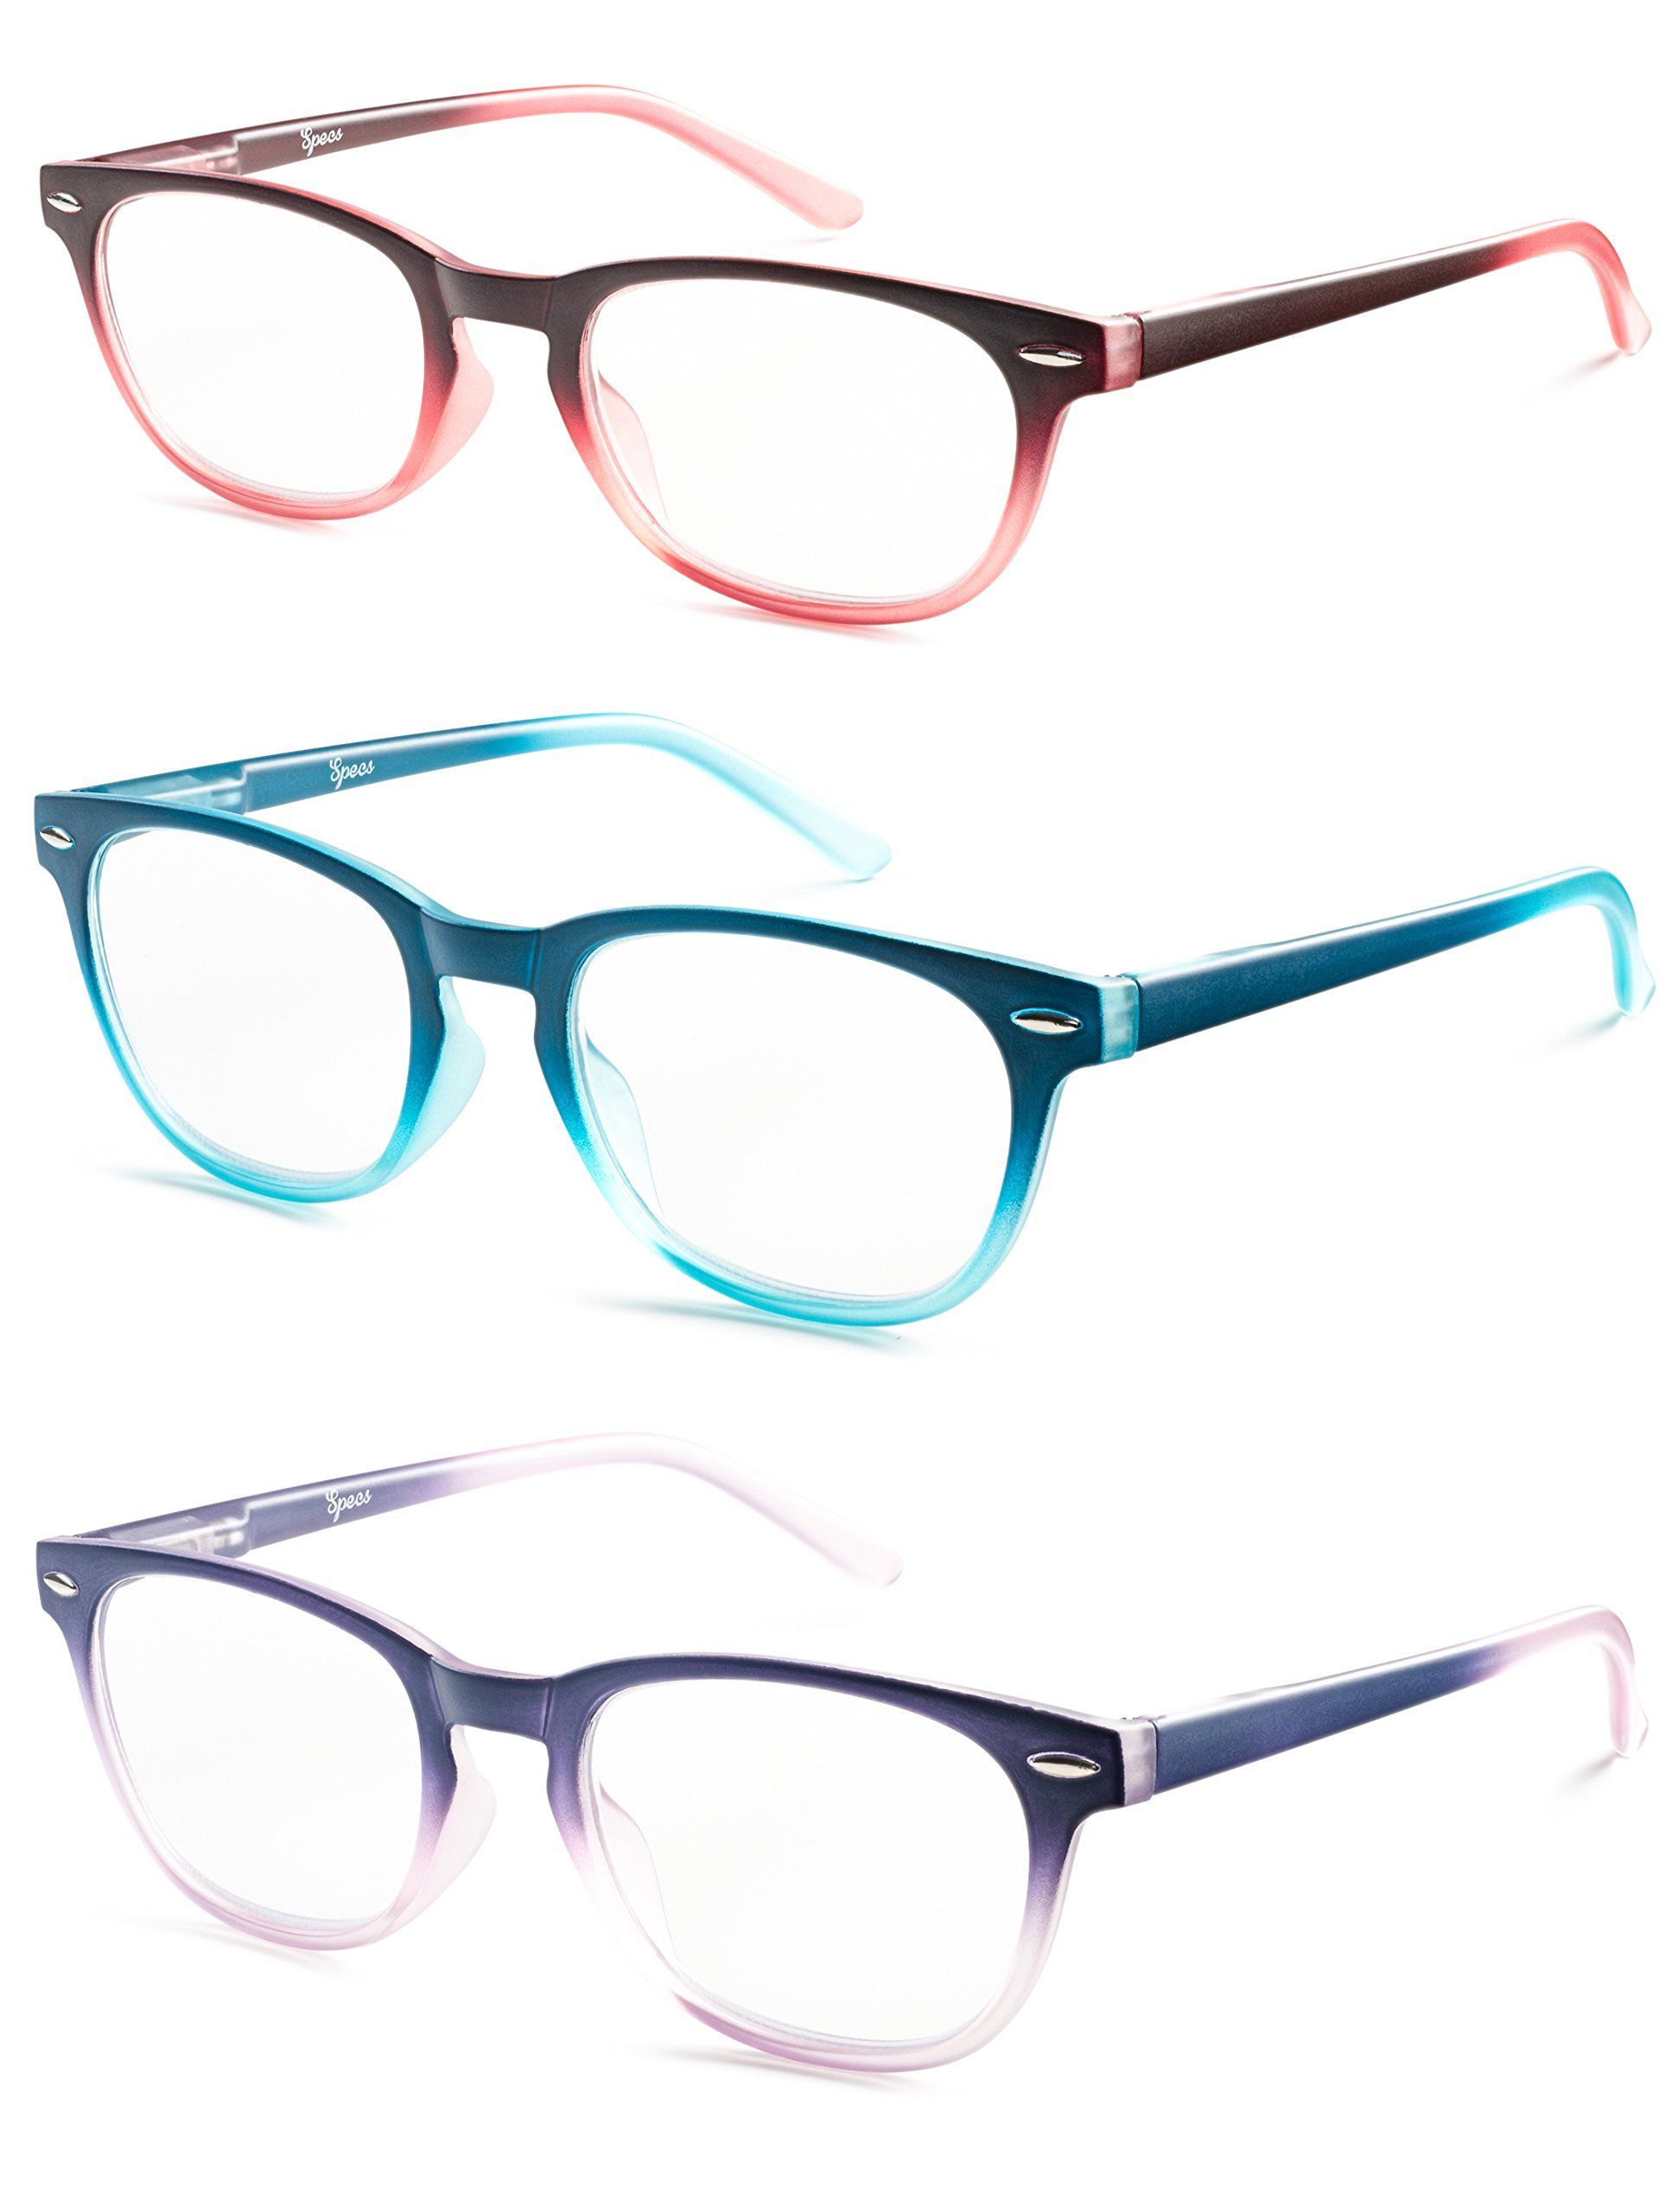 Colorful Round Womens Reading Glasses for Reading Set of